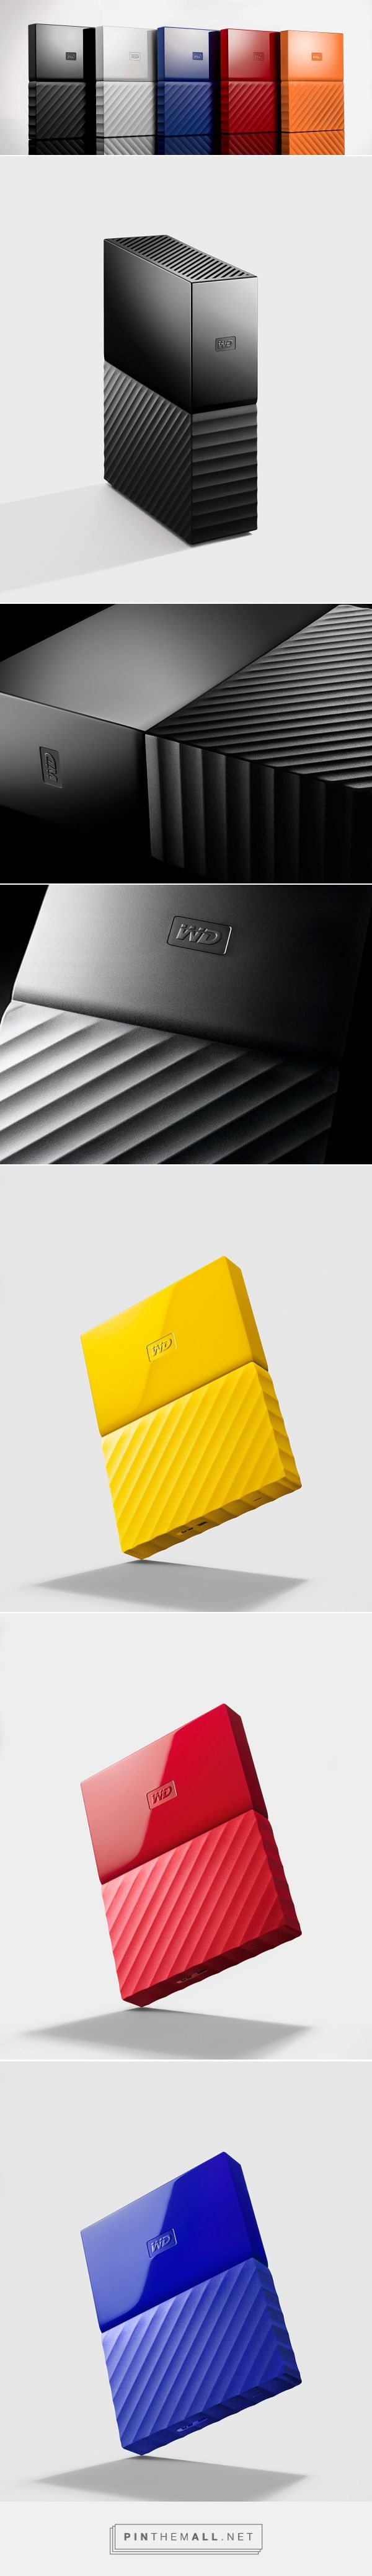 fuseproject reimagines harddrive as minimalist miniature - created via https://pinthemall.net